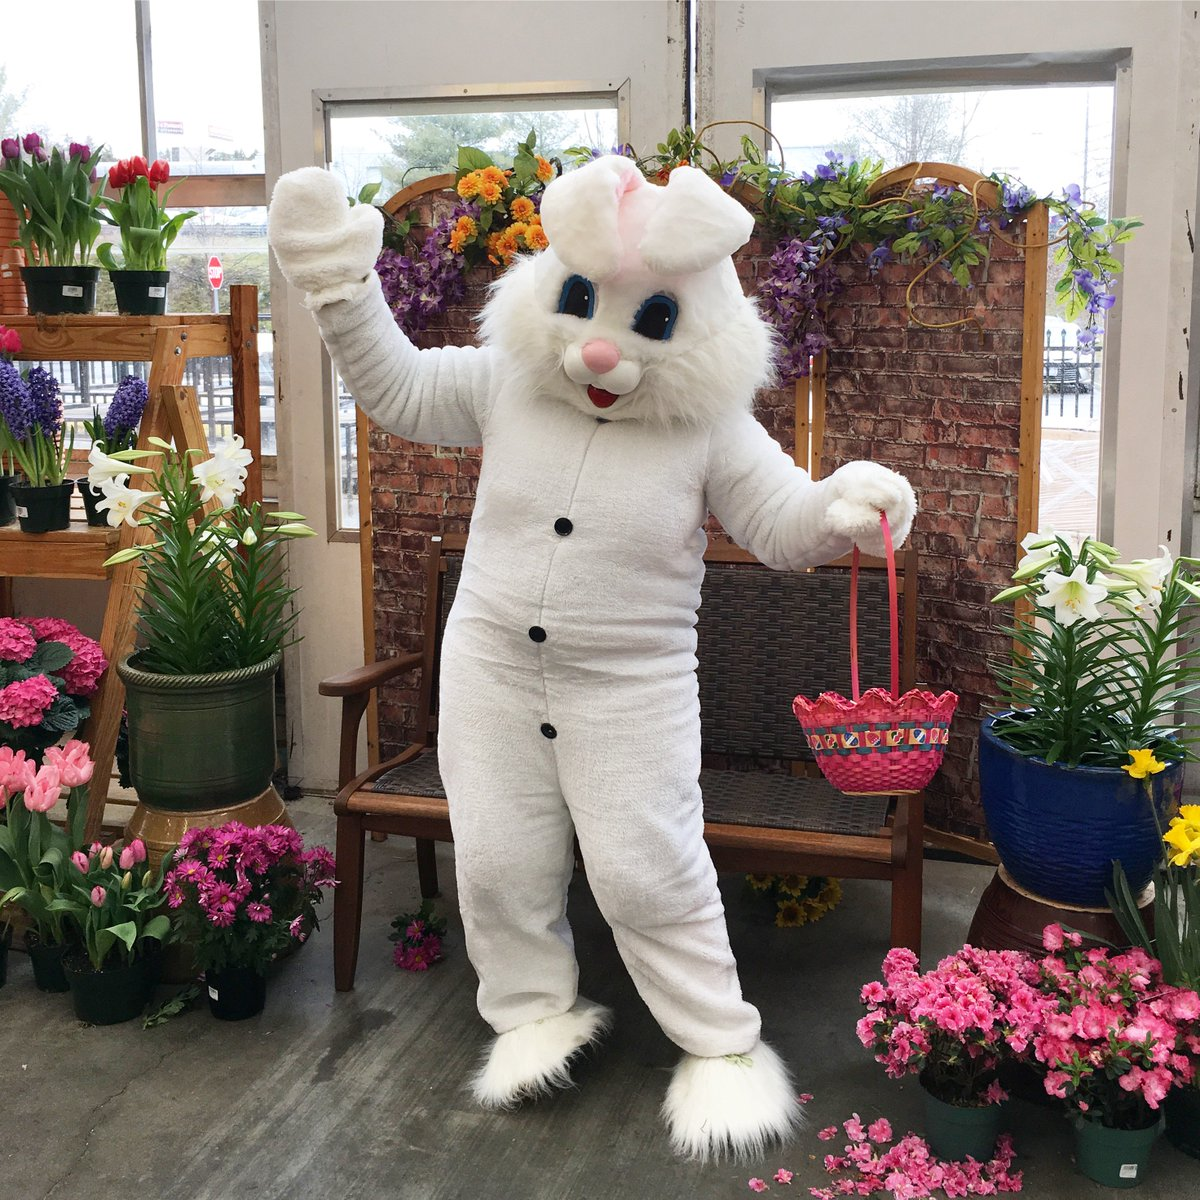 Visit our website for dates and times at each Adams location. http://adamsfarms.com/events/easter-bunny/ …pic.twitter.com/5Catfze5jQ